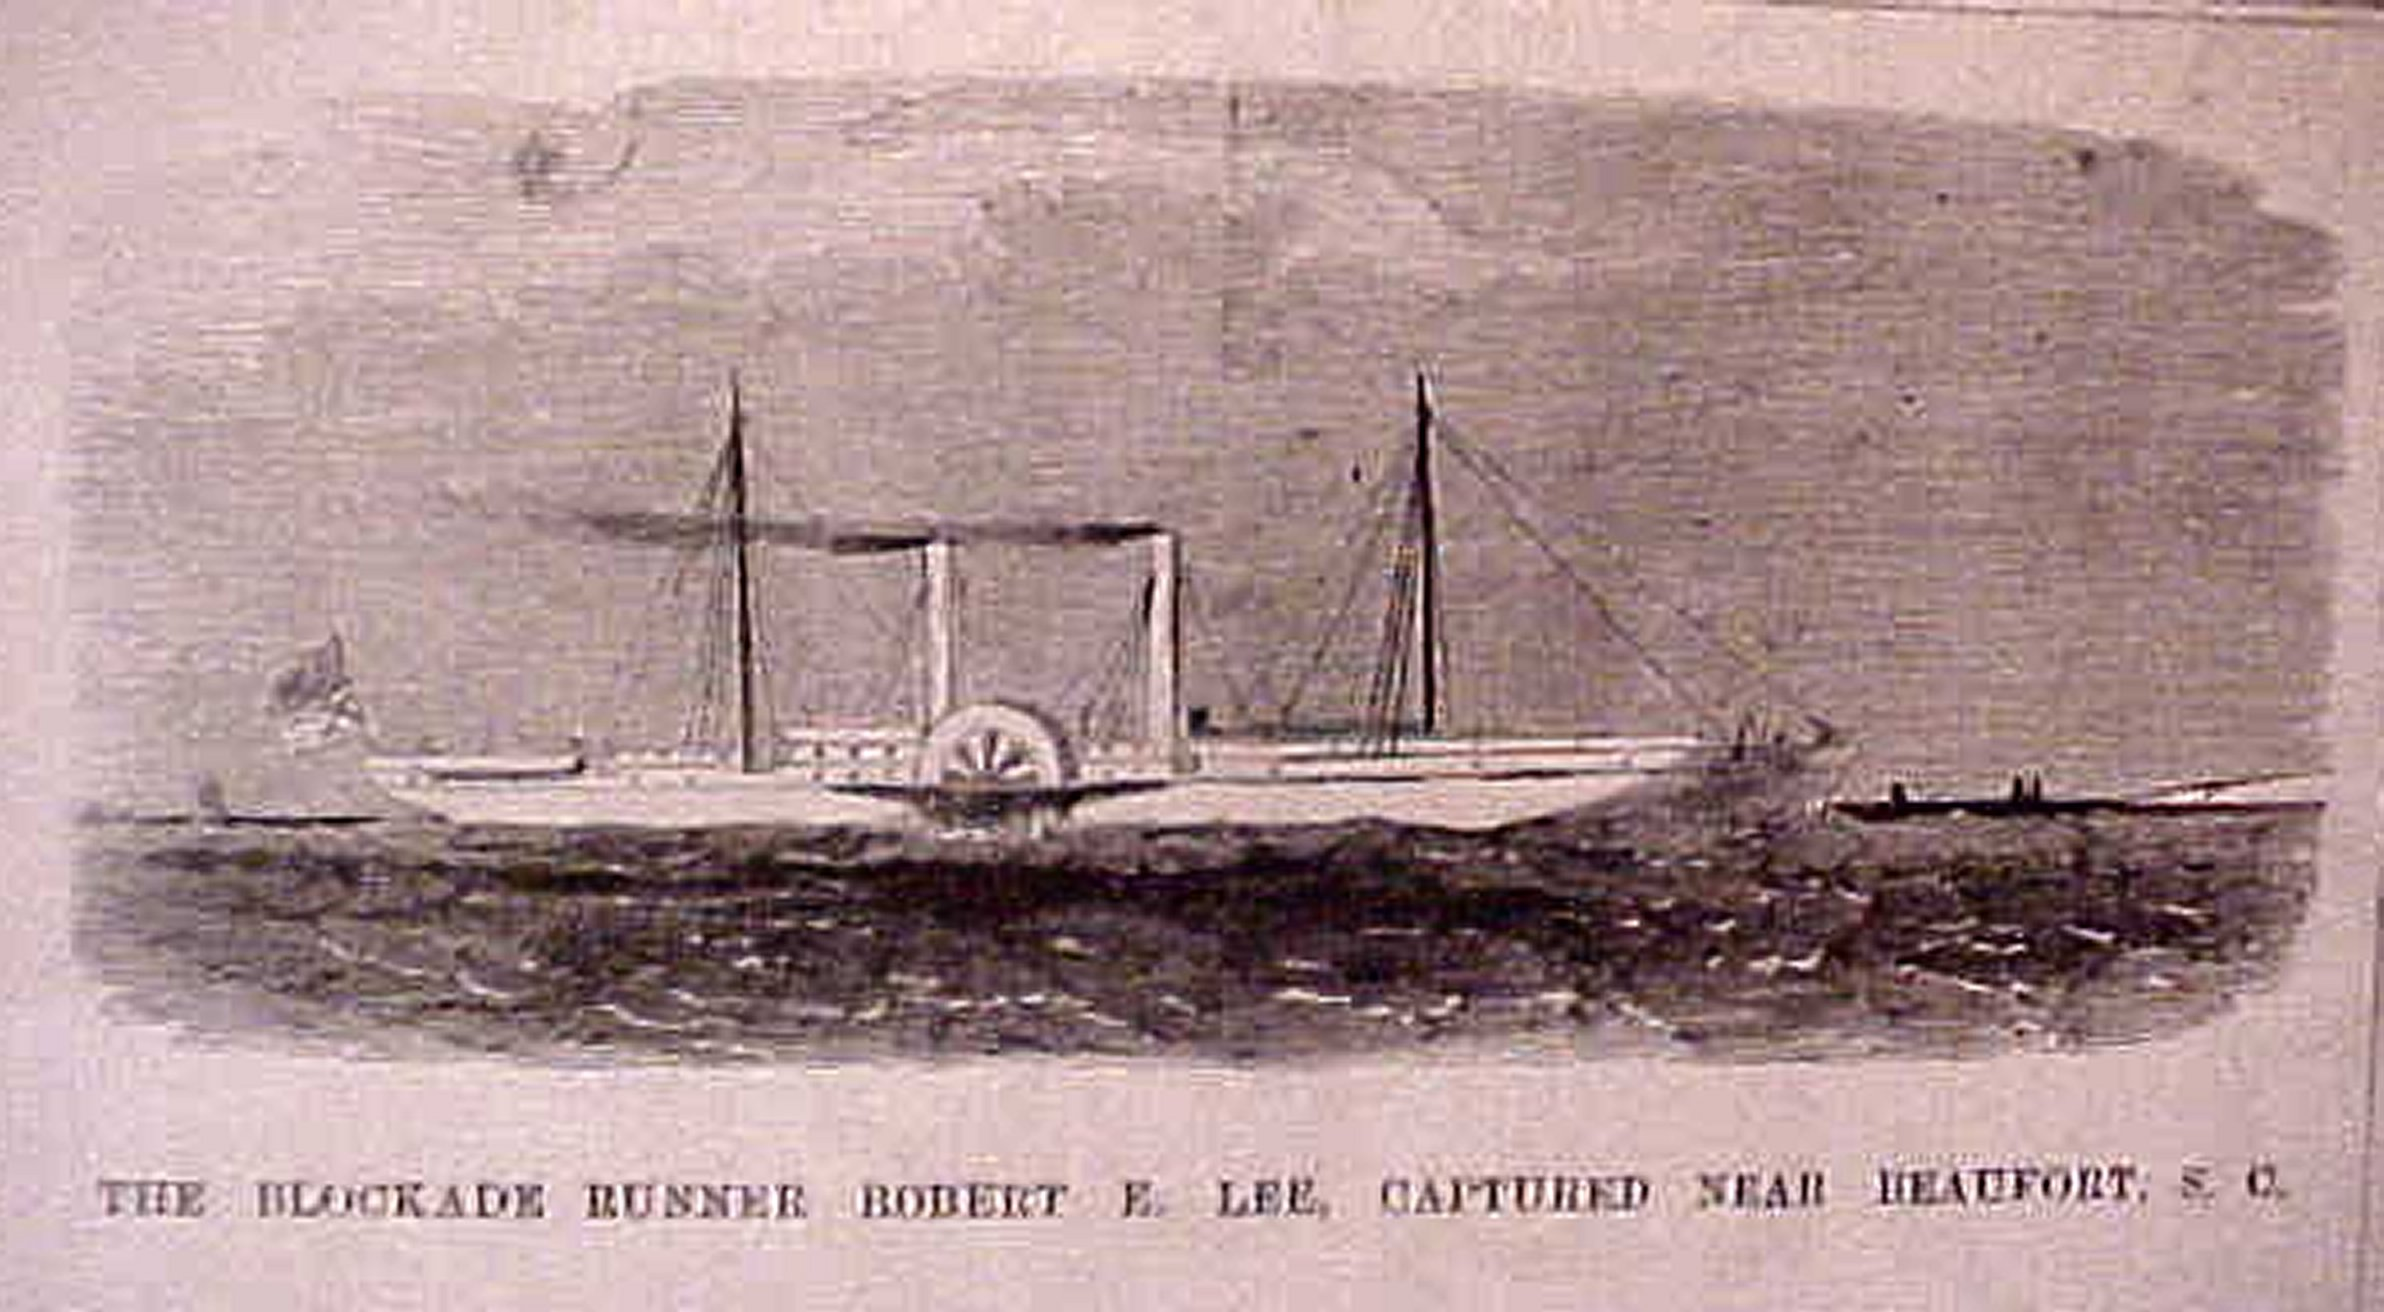 Yankee Paddle Steamer Robert E Lee